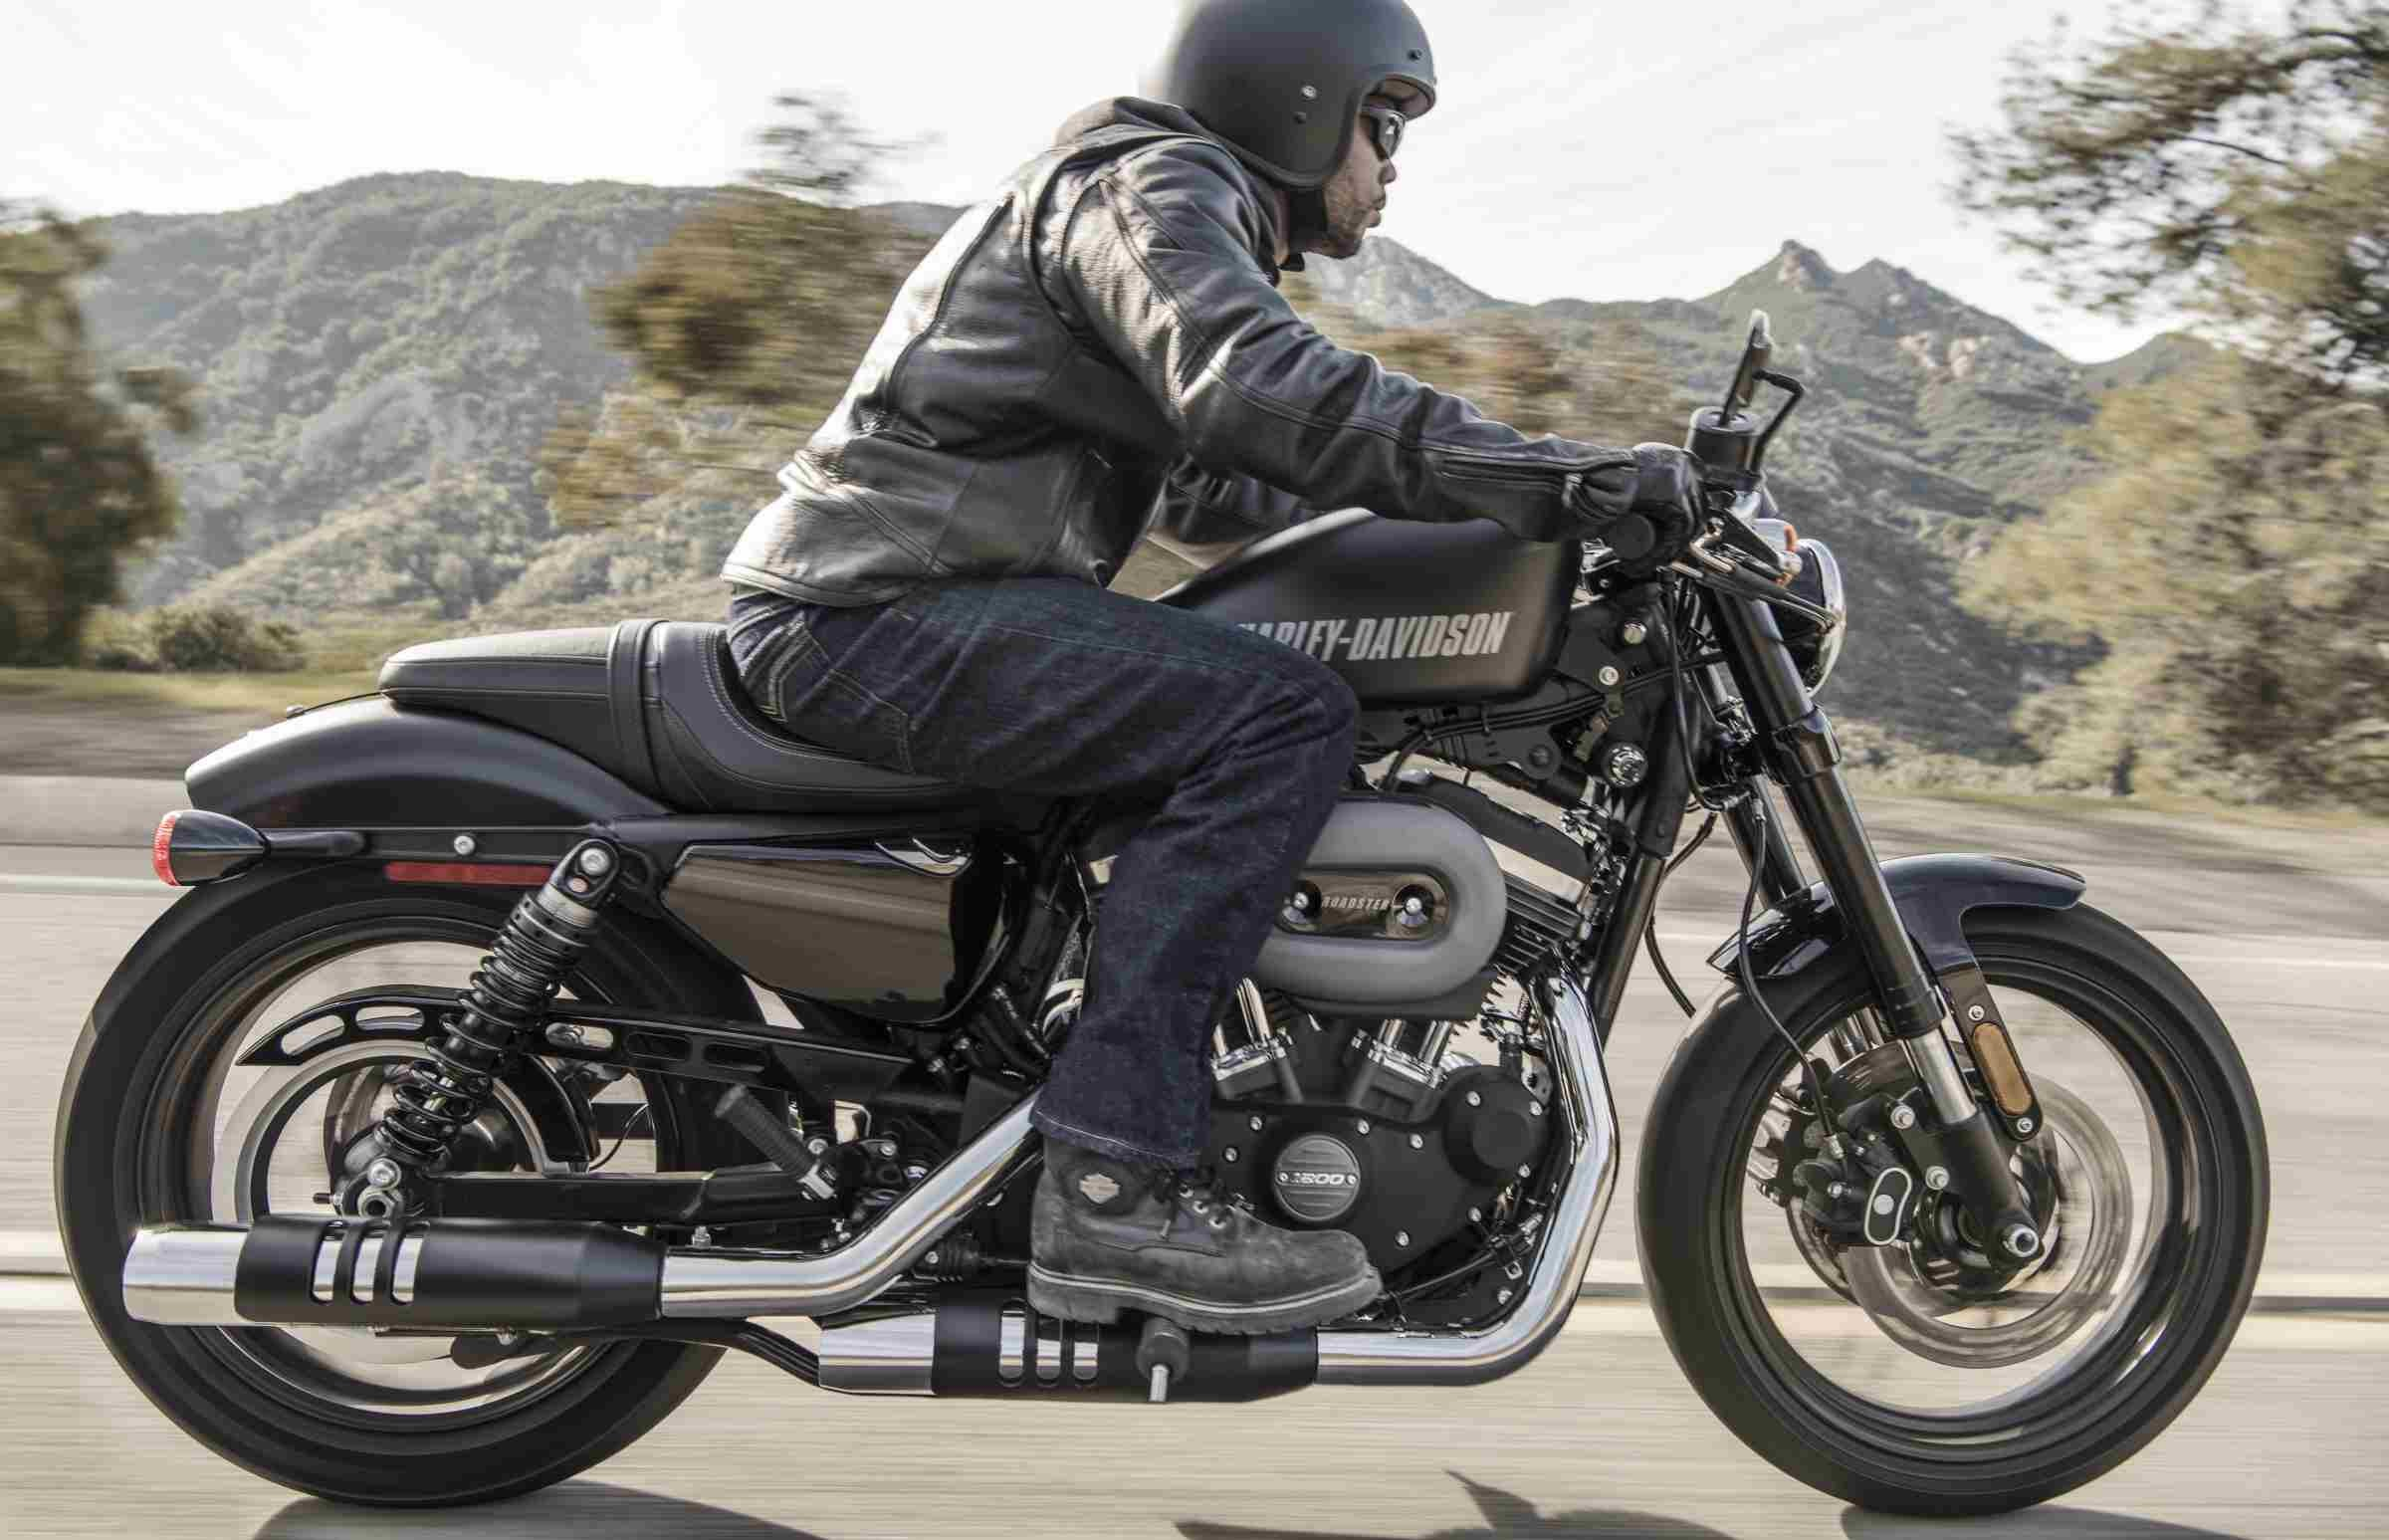 V Twin Motorcycle Engine Diagram 5 Reasons the New Harley Davidson Roadster Will Reinvent the Sportster Of V Twin Motorcycle Engine Diagram